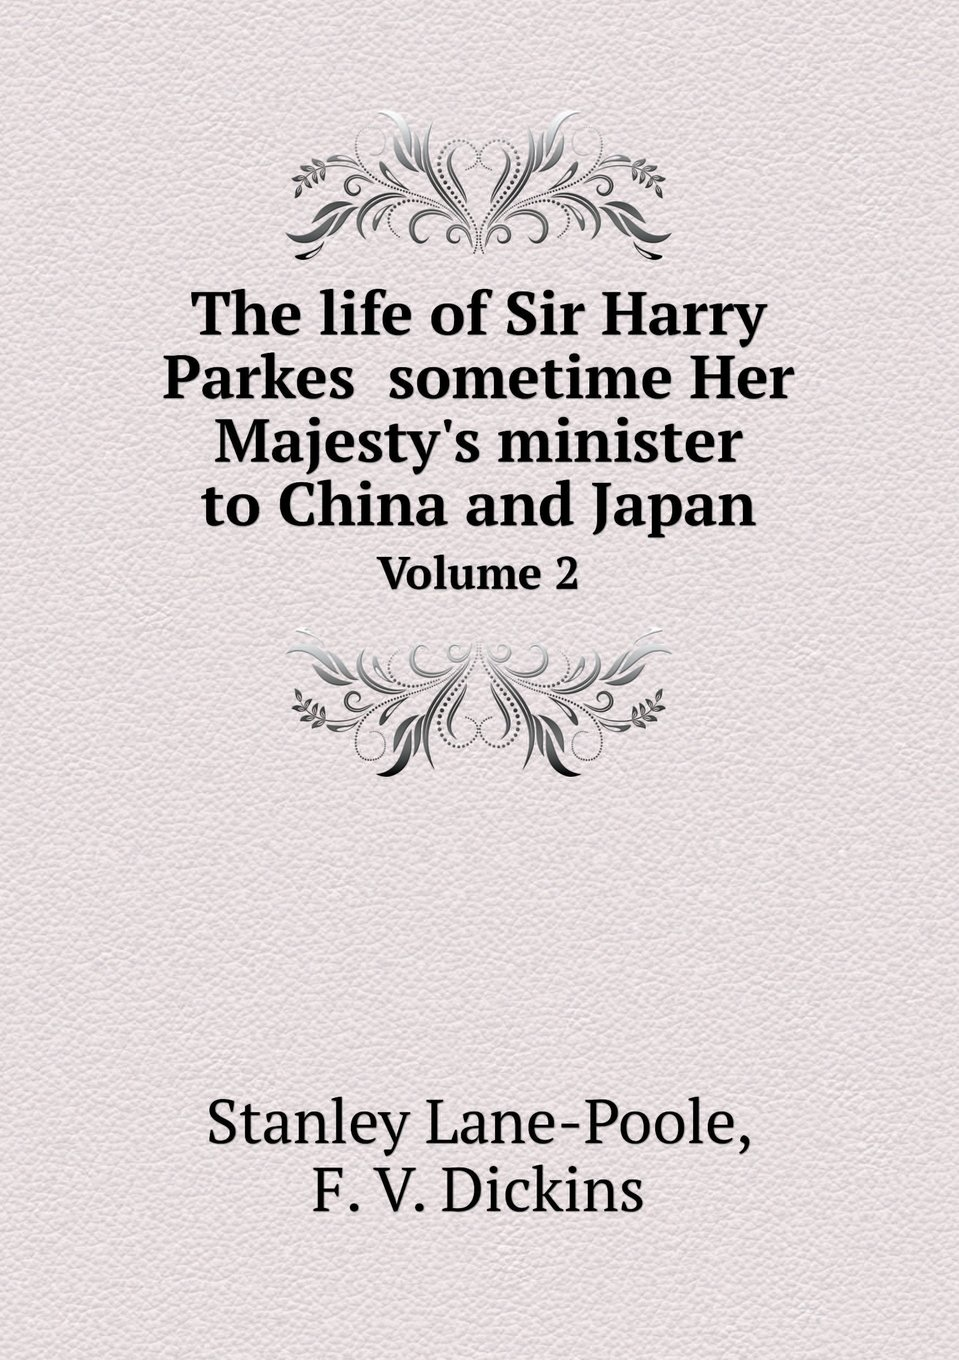 The life of Sir Harry Parkes  sometime Her Majesty's minister to China and Japan Volume 2